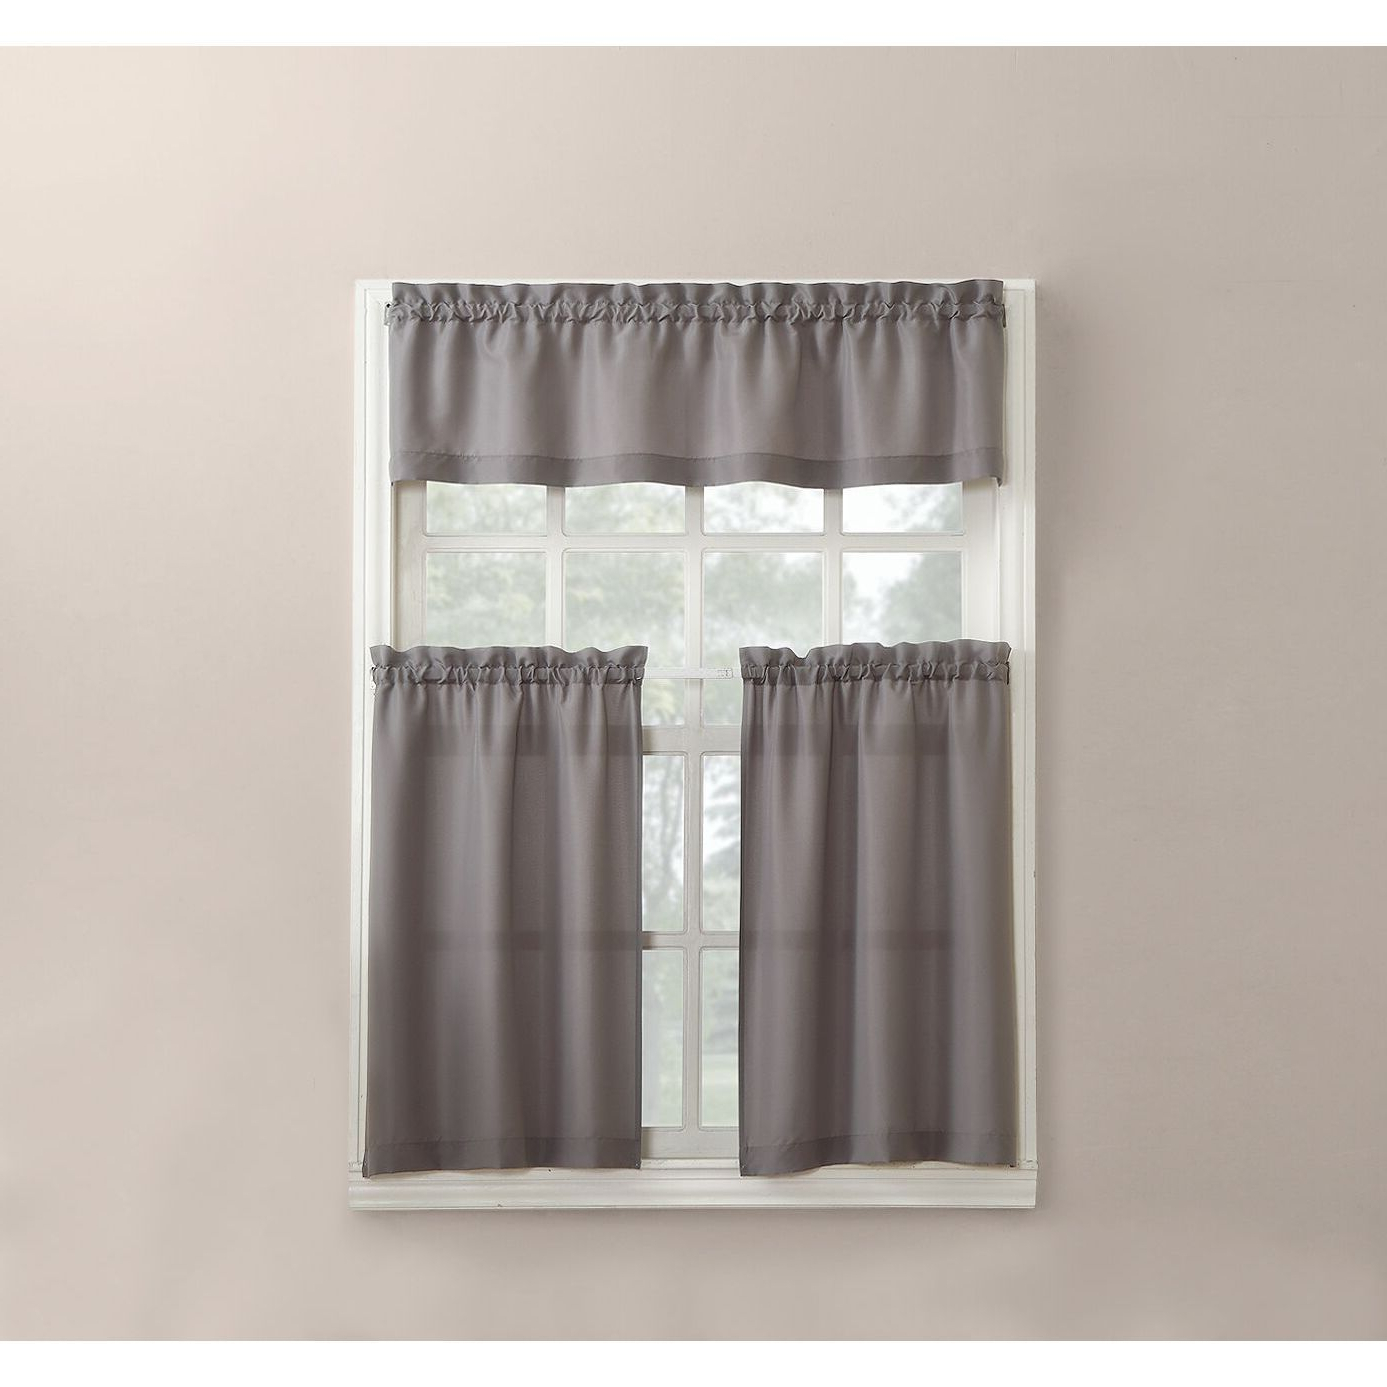 2020 Grey Window Curtain Tier And Valance Sets For No (View 4 of 20)